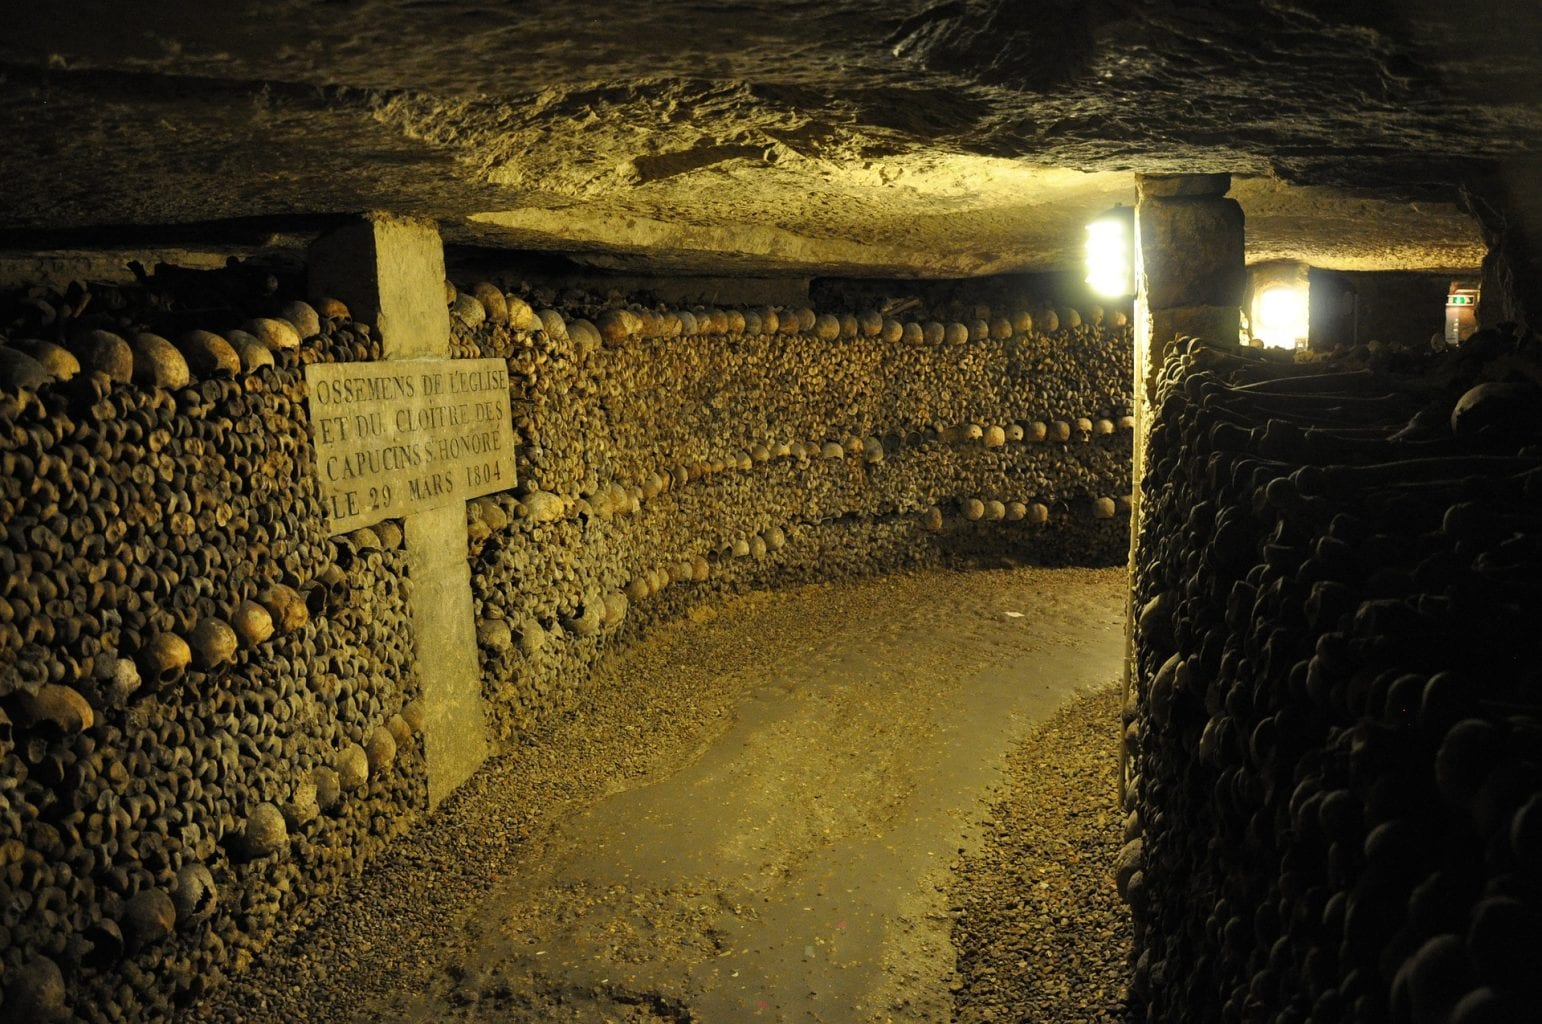 The total length of the Paris catacombs has been estimated to at least 300 kilometers although most of them are closed to the public. Credit: Chiefhardy/Pixabay